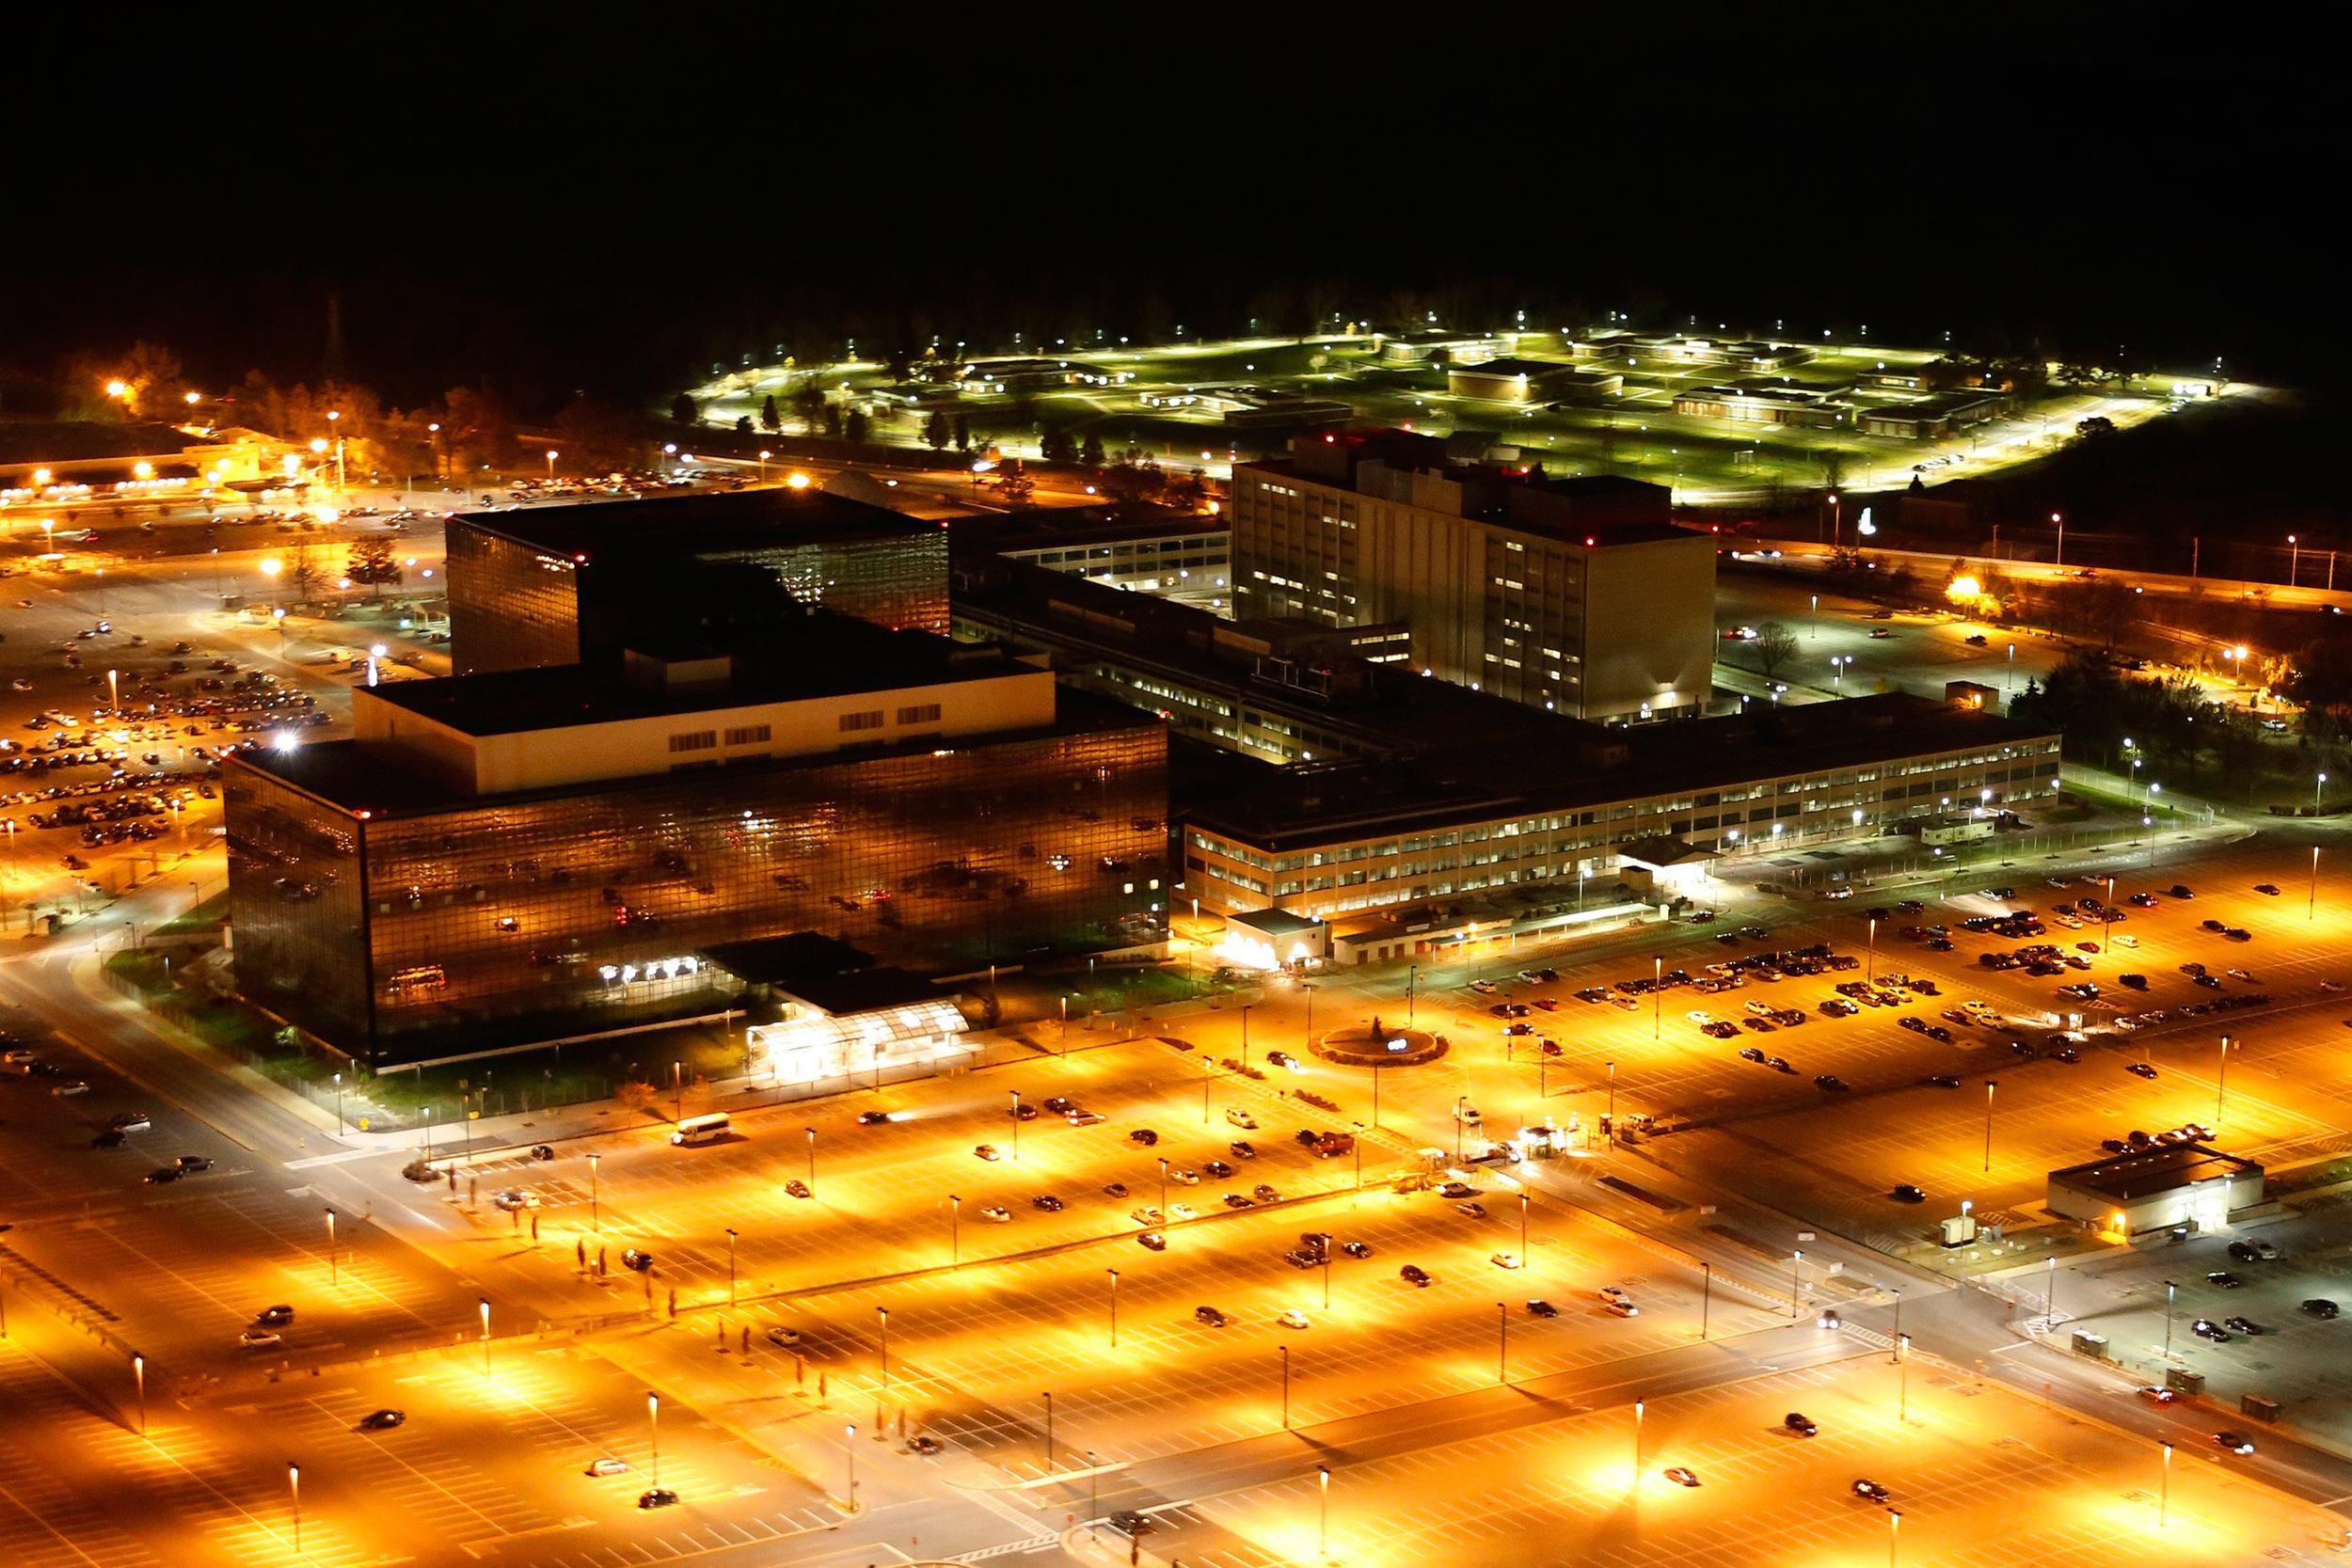 Image: National Security Agency (NSA) headquarters in Fort Meade, Maryland.